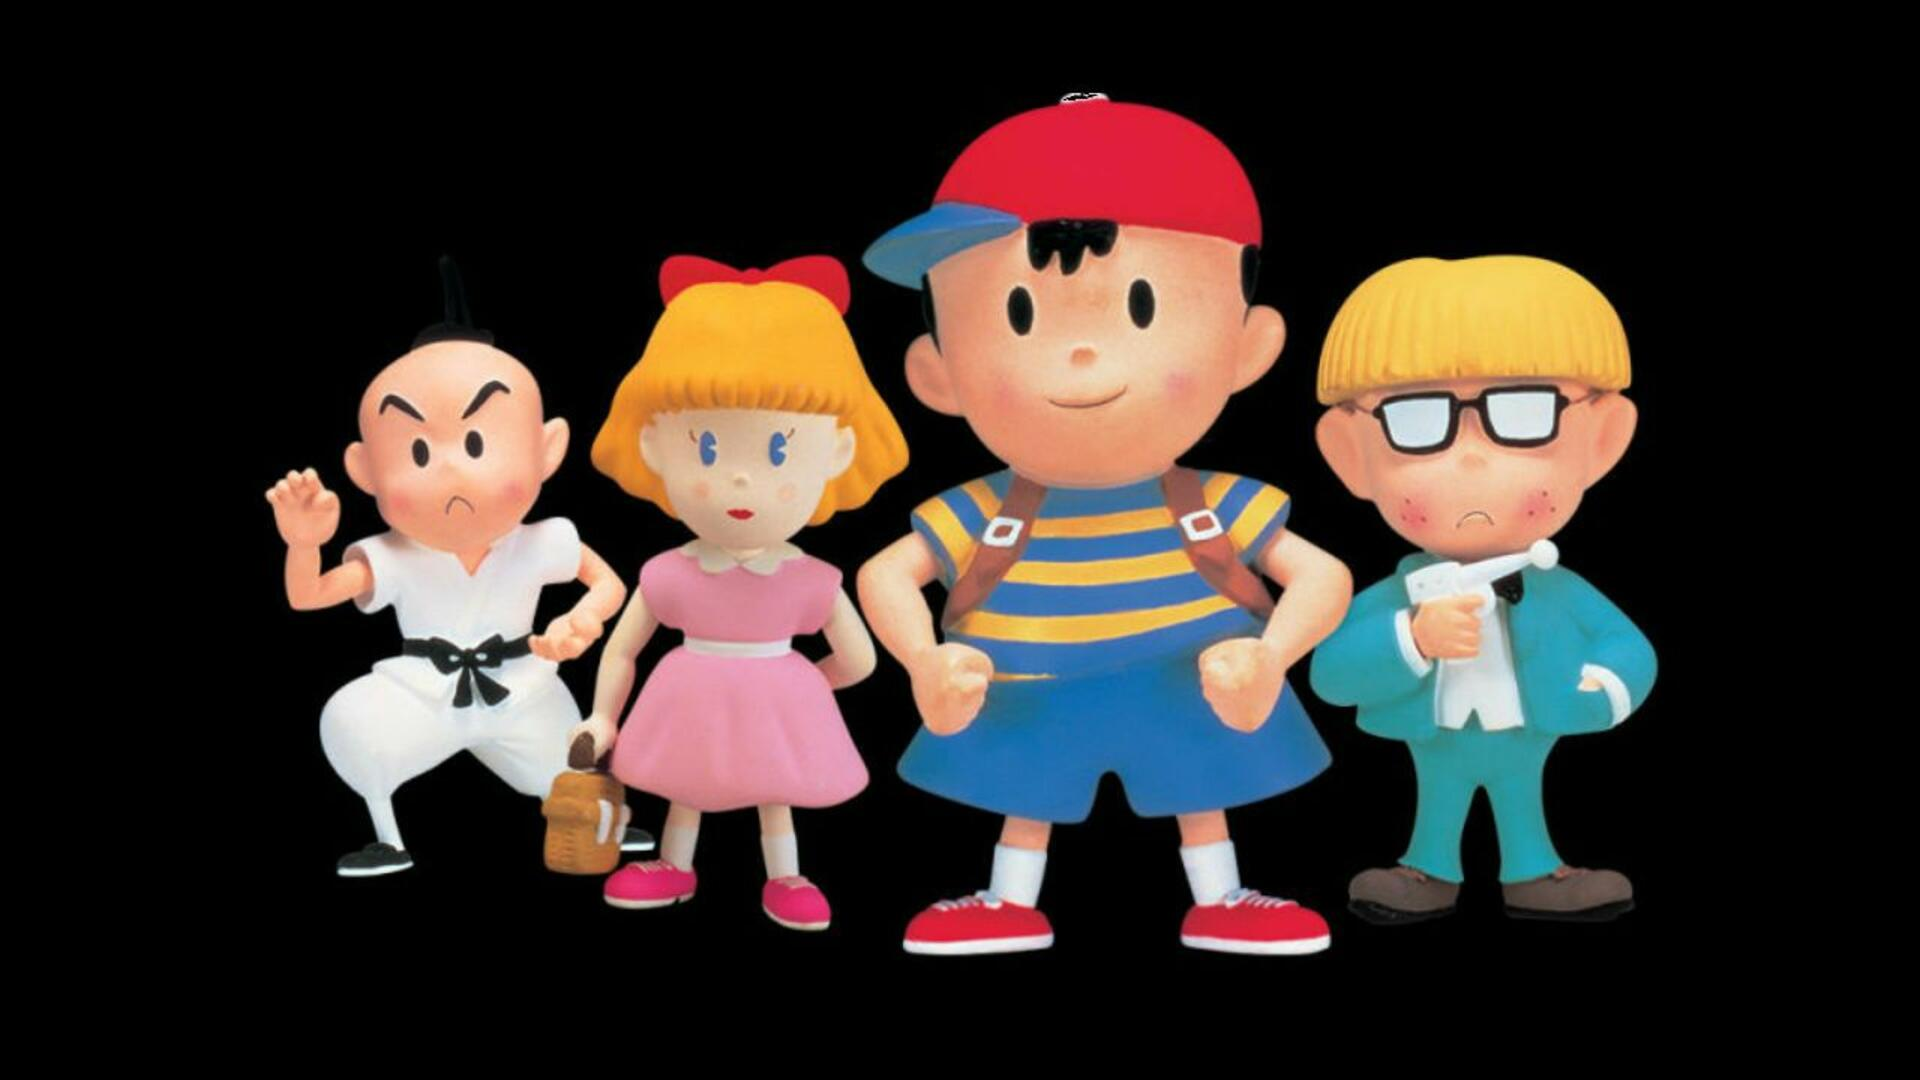 Please Stop Comparing Games to EarthBound